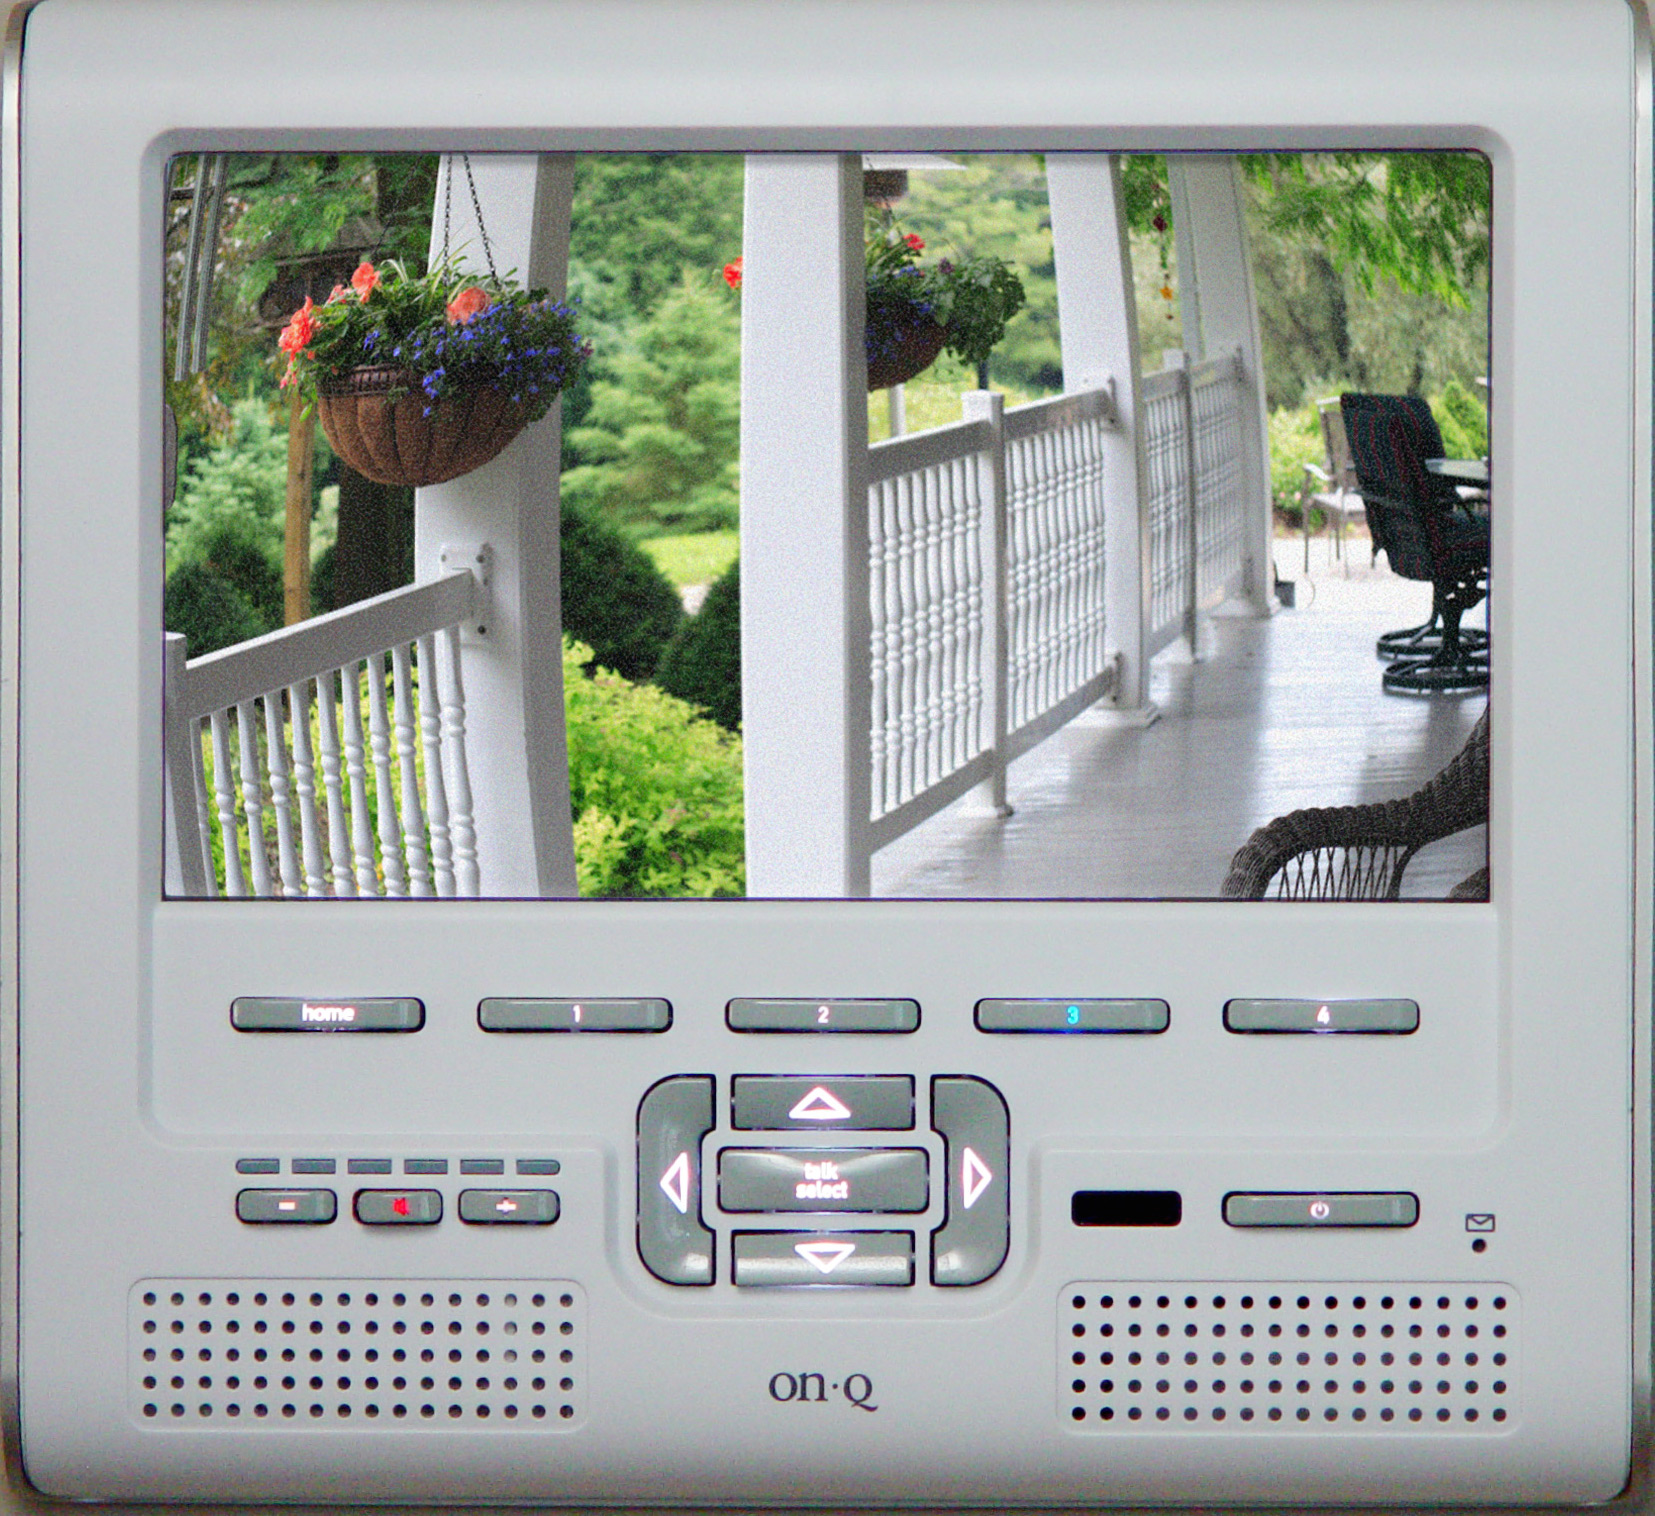 home control panel with LCD screen